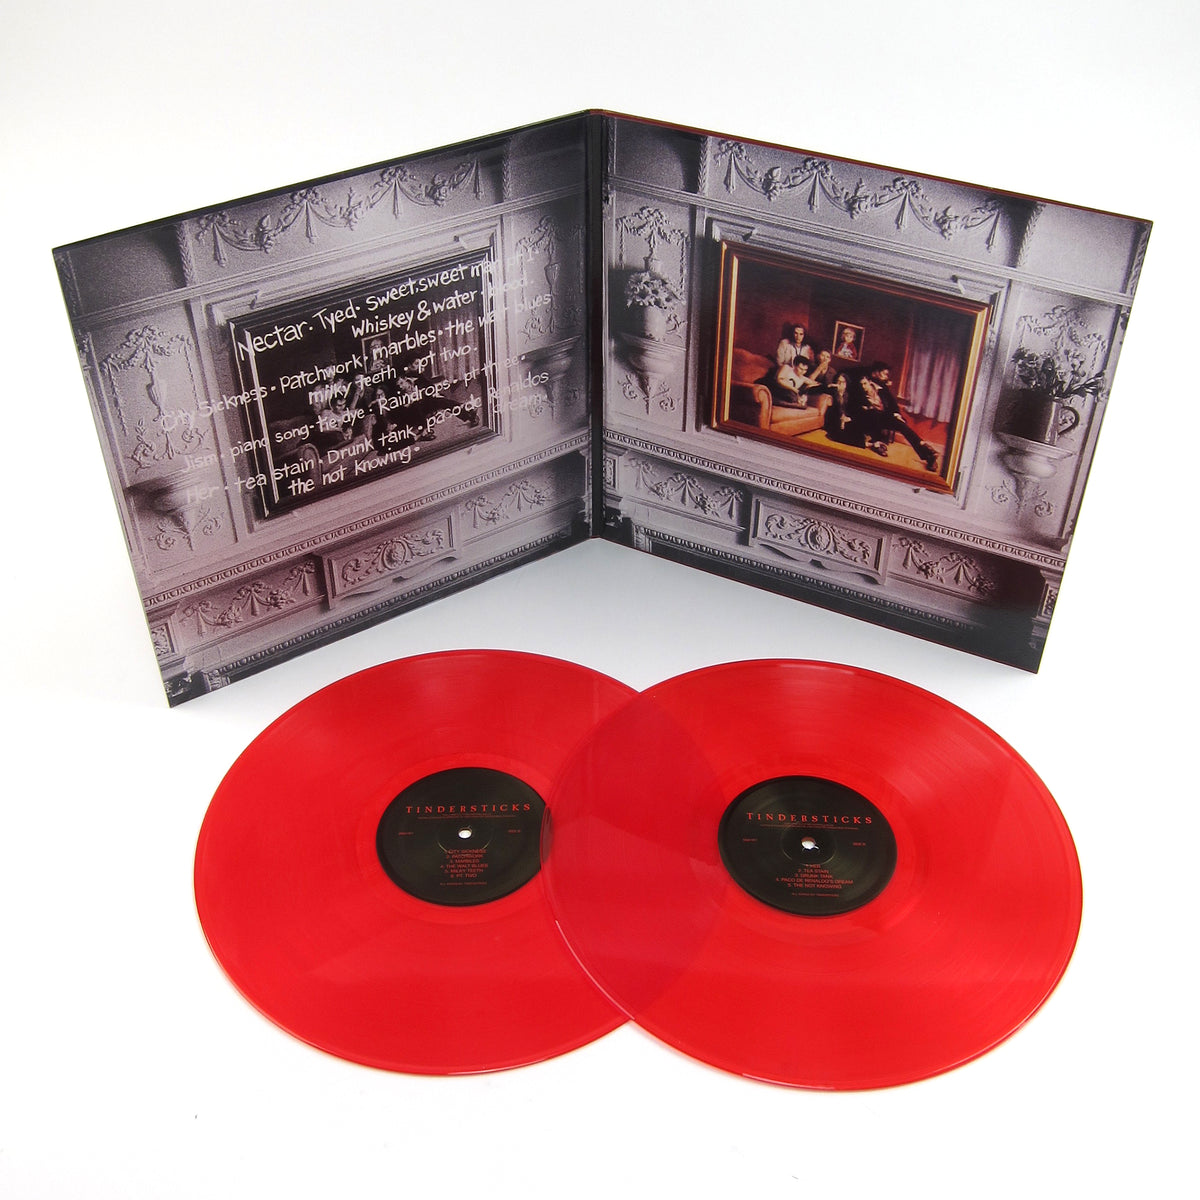 Tindersticks: Tindersticks I (Red Colored Vinyl) Vinyl LP